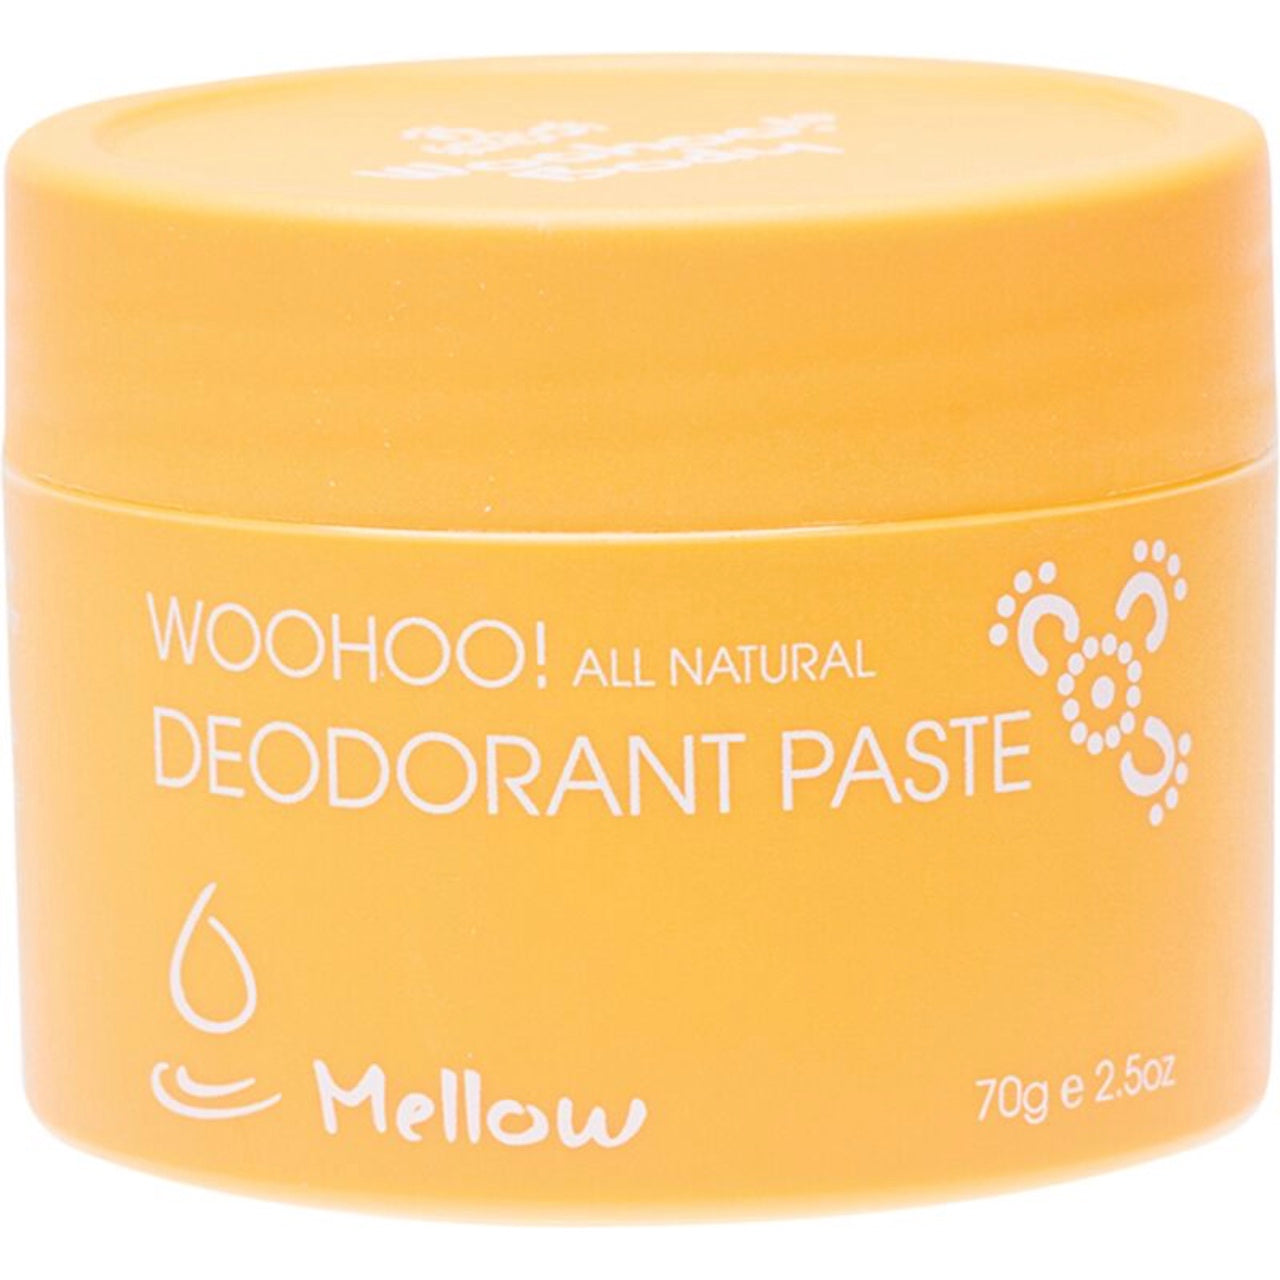 Woohoo Deodorant Paste - Mellow Sensitive